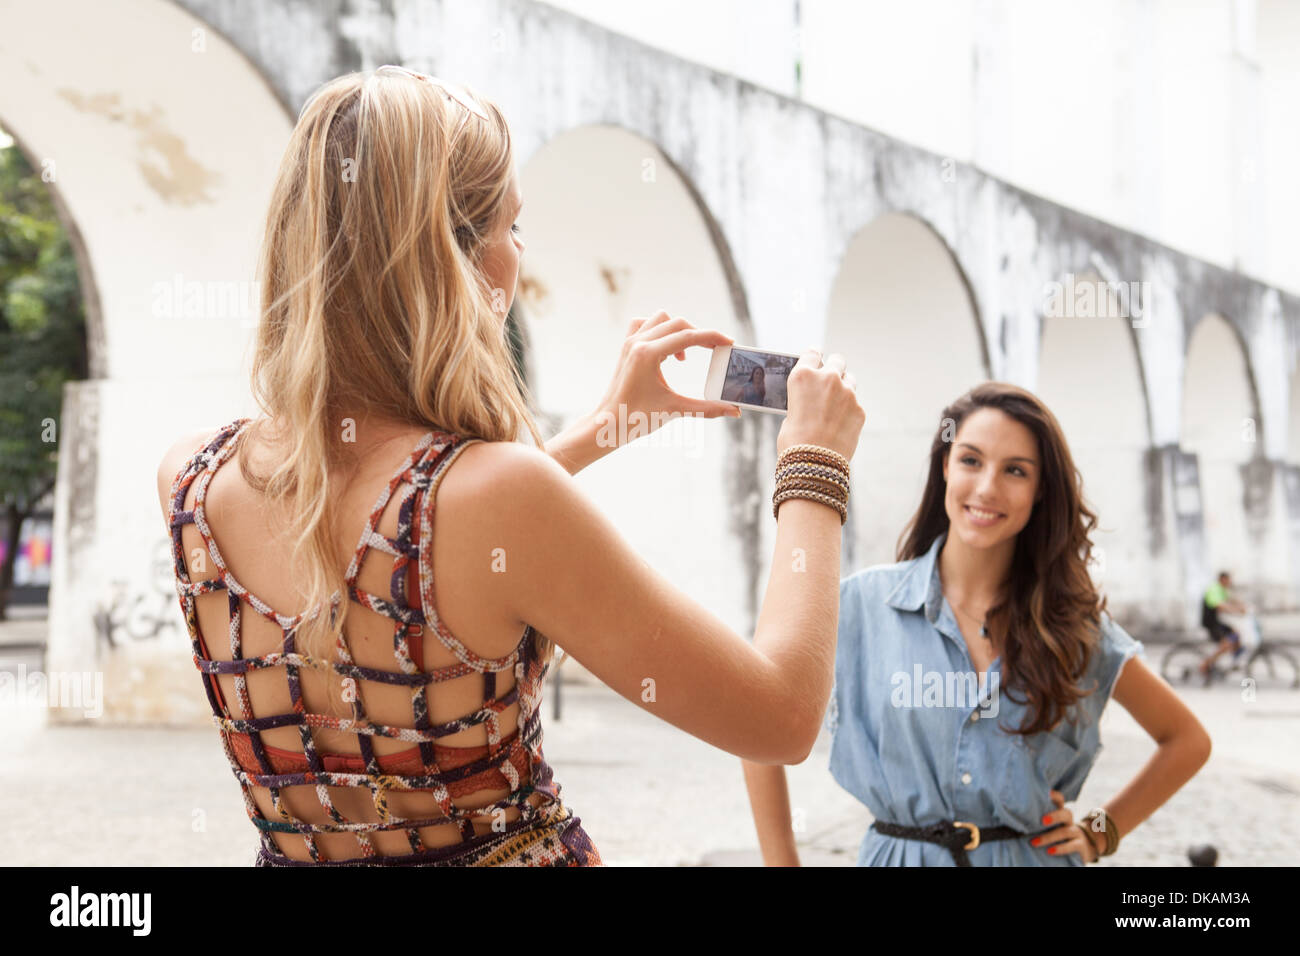 Young woman taking photograph of friend in front of Carioca Aqueduct, Rio de Janeiro, Brazil - Stock Image